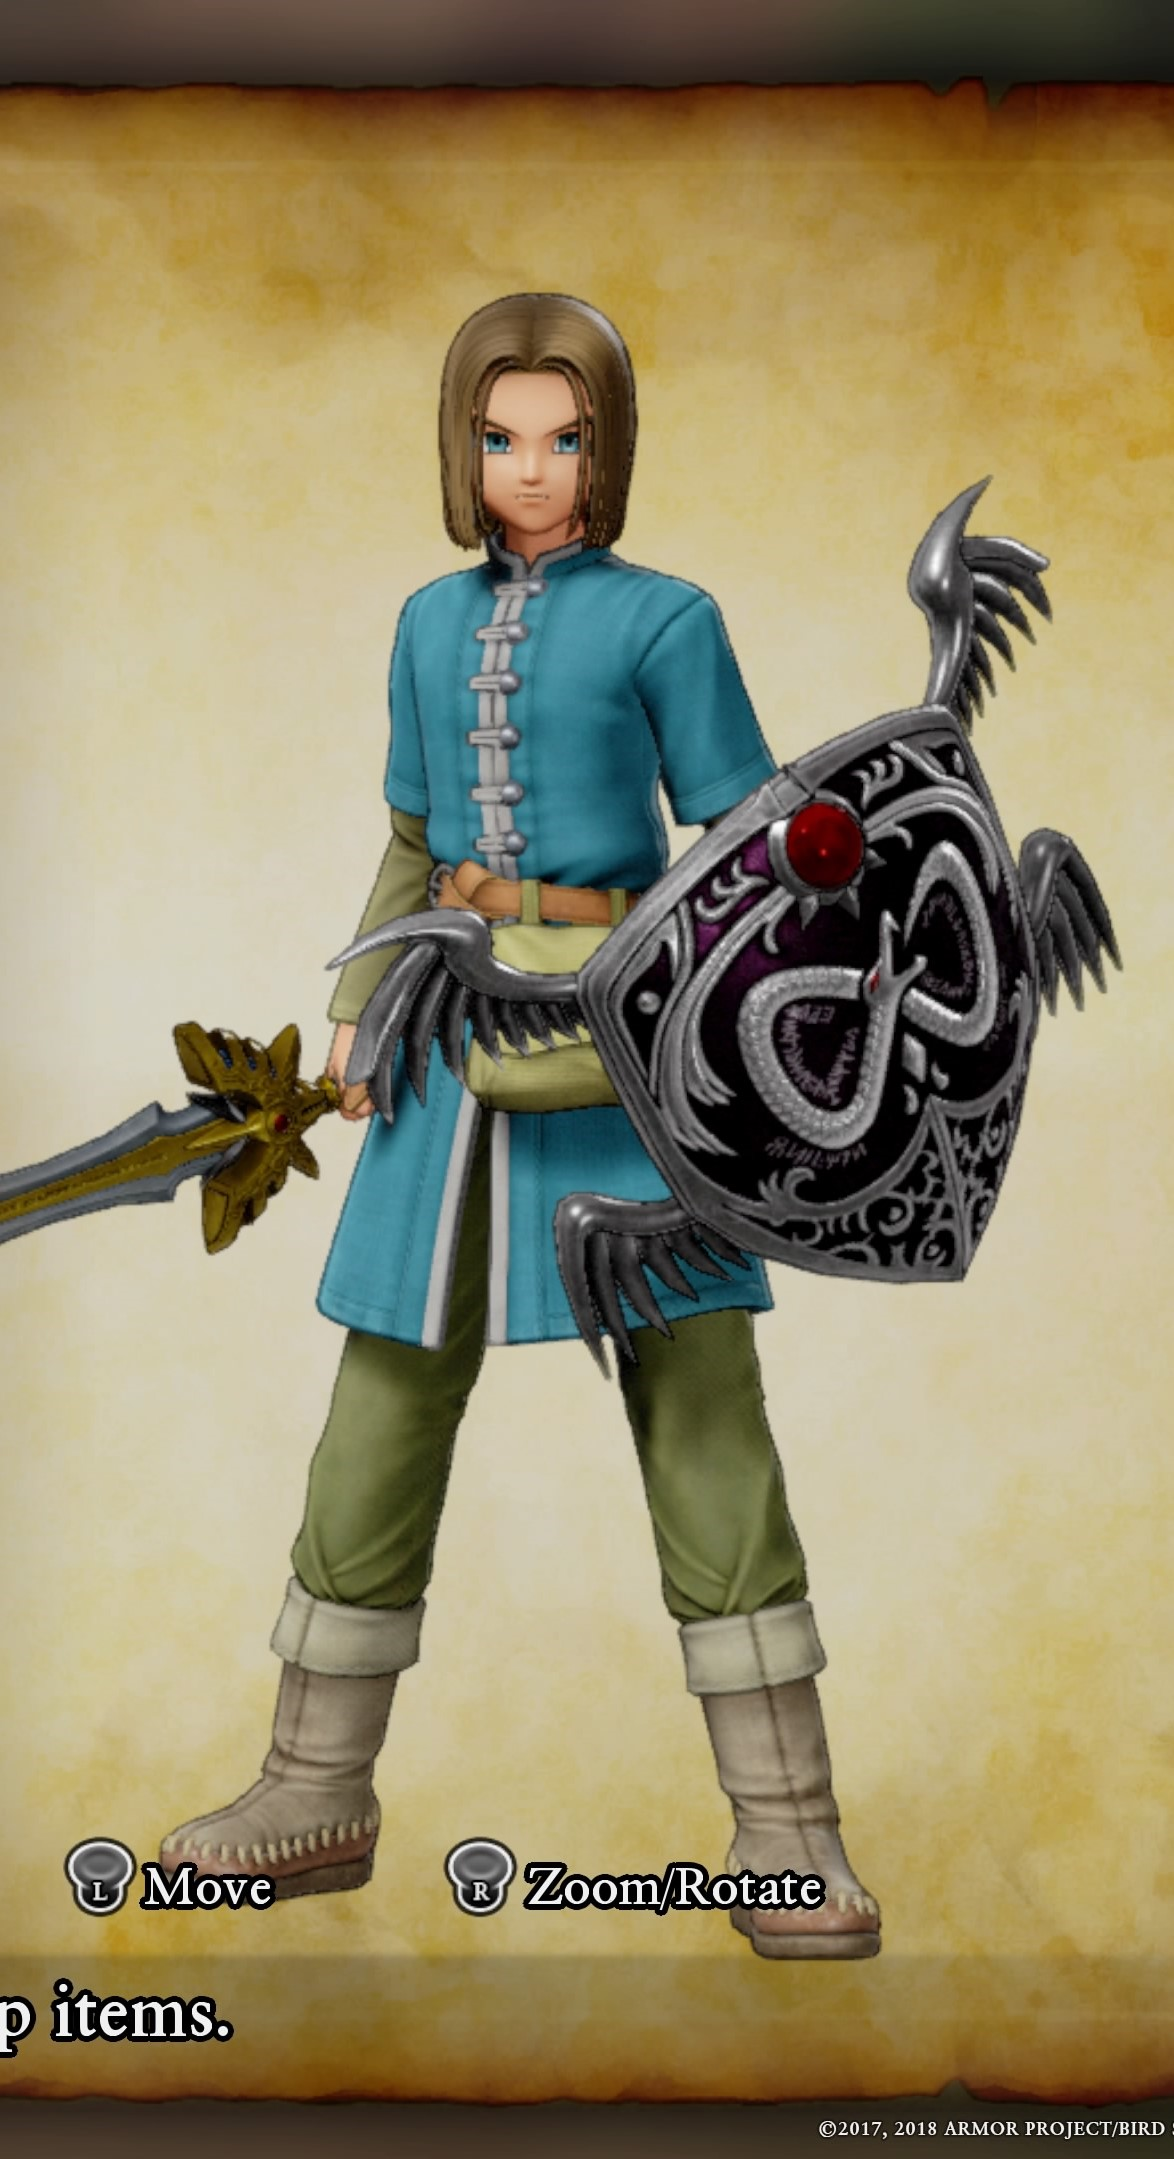 Dragon Quest Xi Guide Costumes Outfits Dedicated Follower Of Fashion Trophy Just Push Start Realm of darkness.net | dragon quest & dragon warrior fan site and shrine. dragon quest xi guide costumes